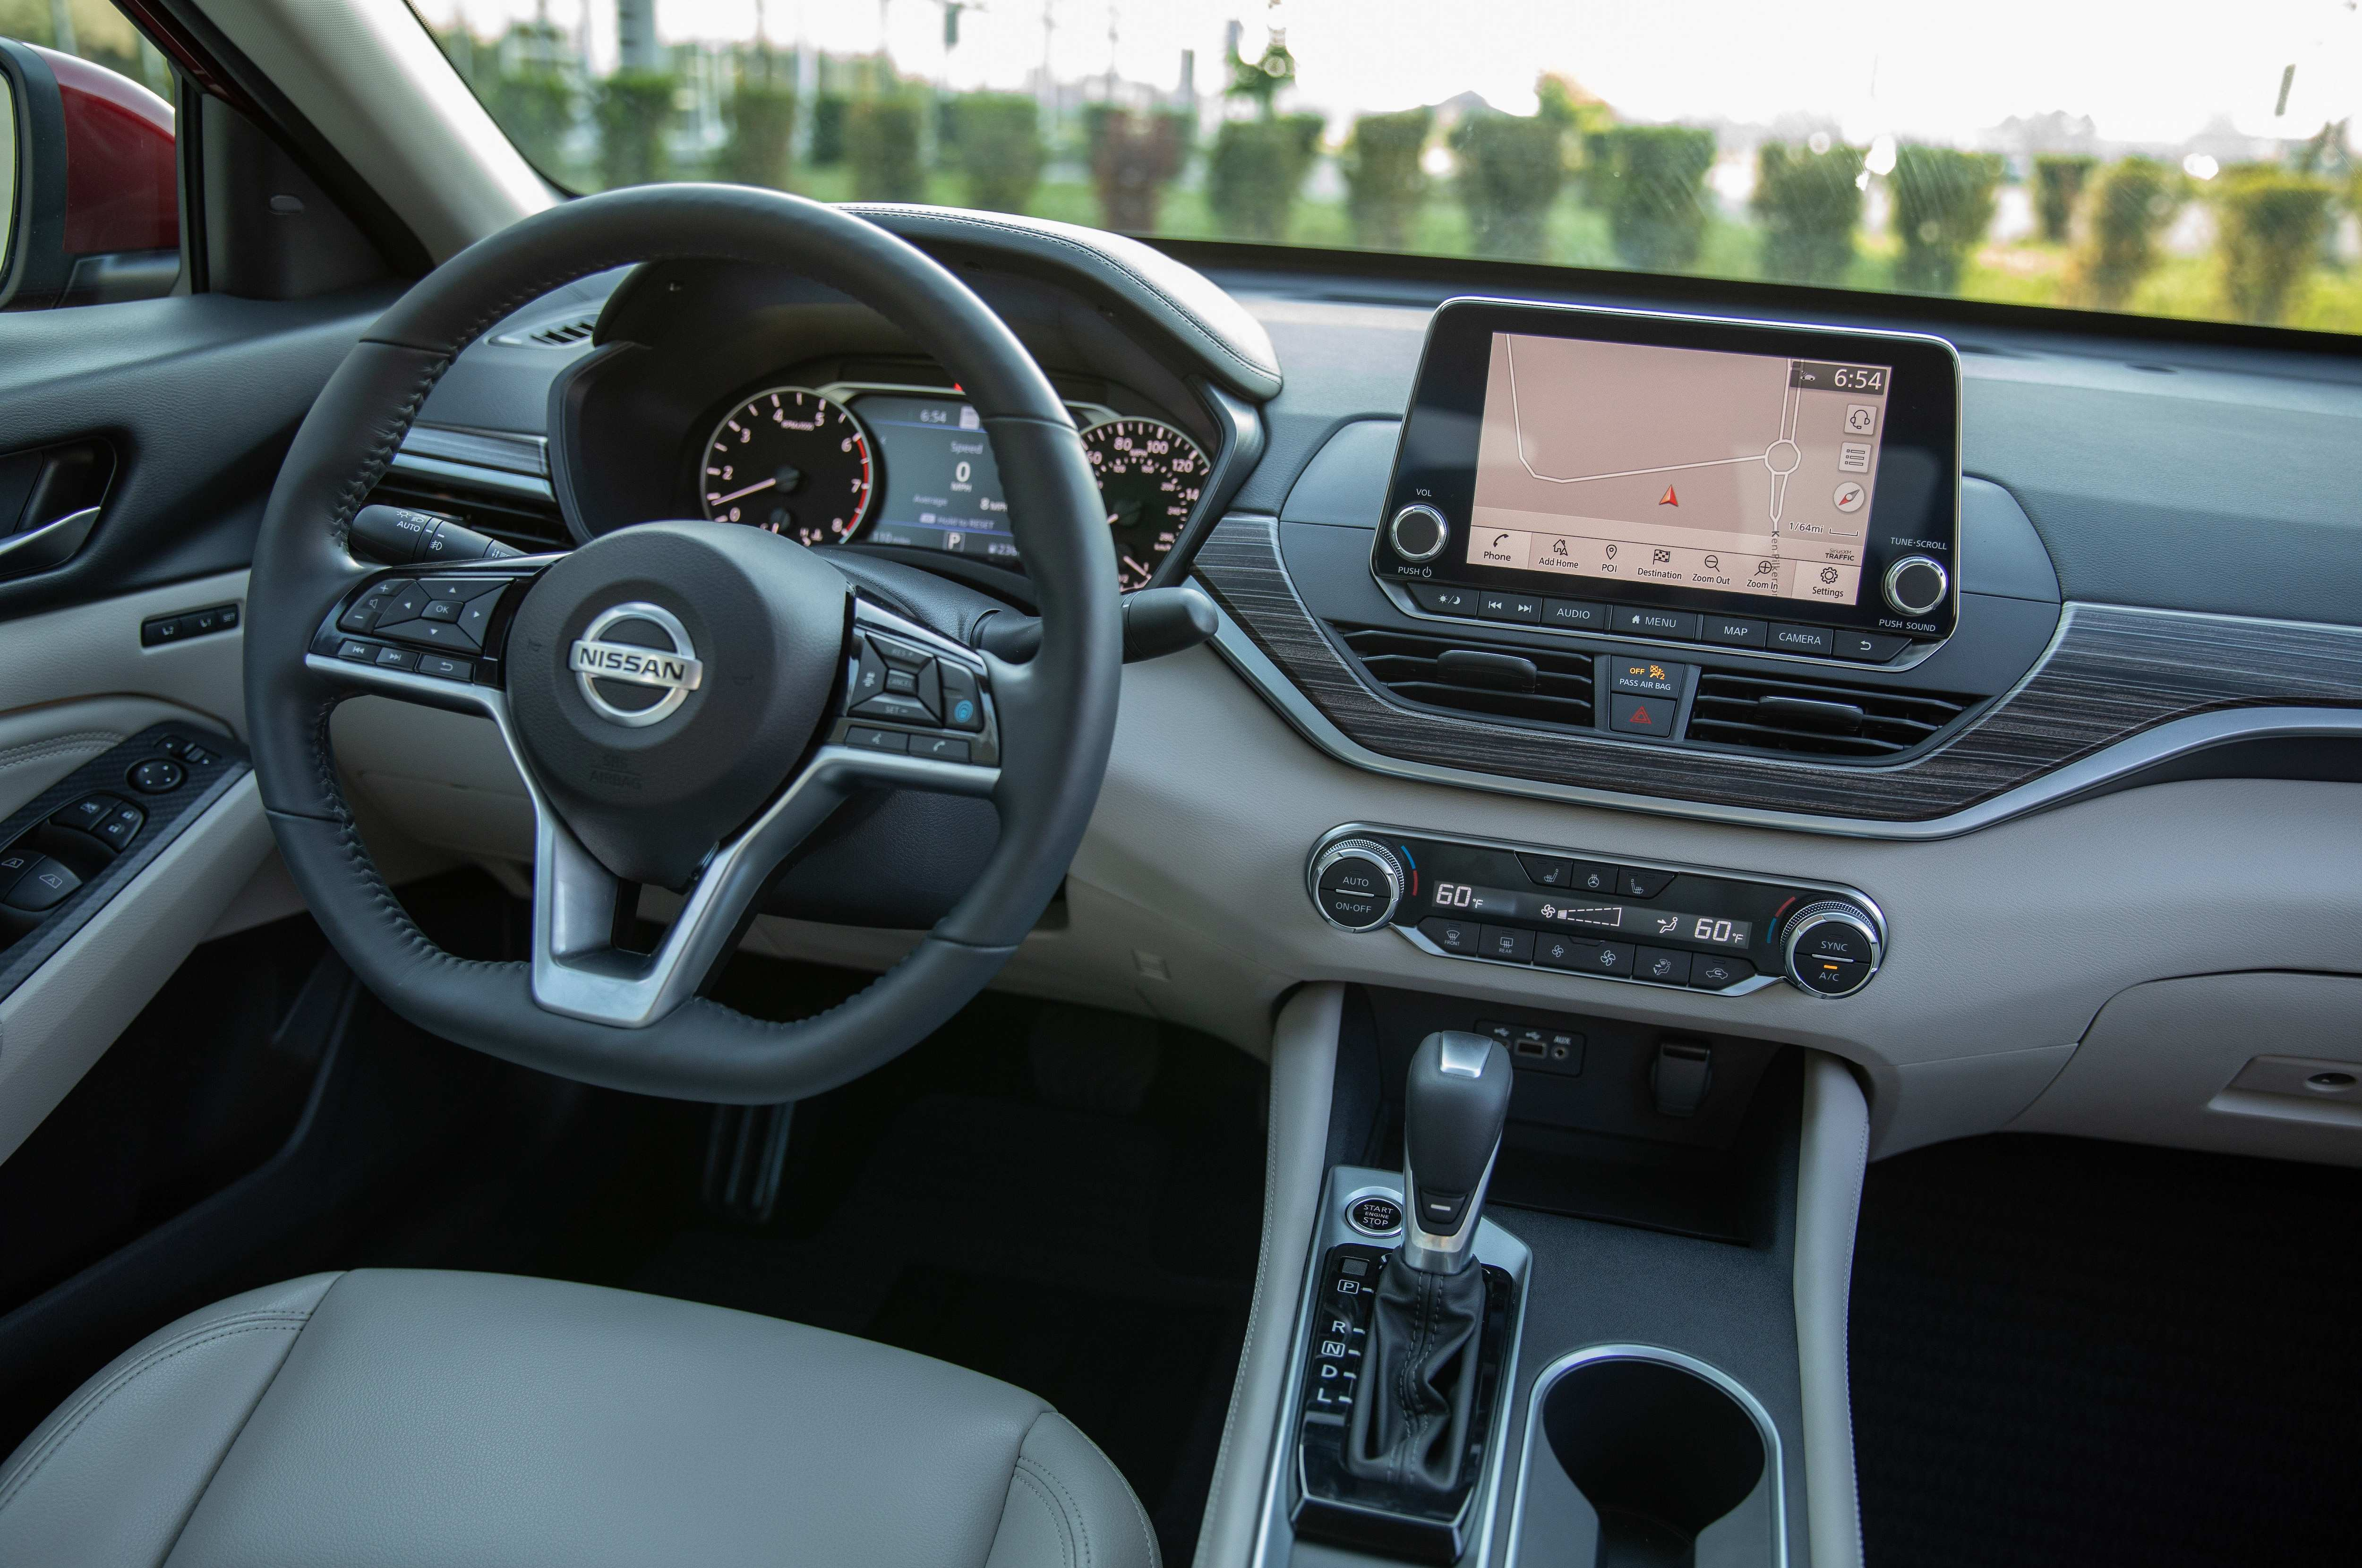 47 New 2019 Nissan Altima Interior Redesign And Concept